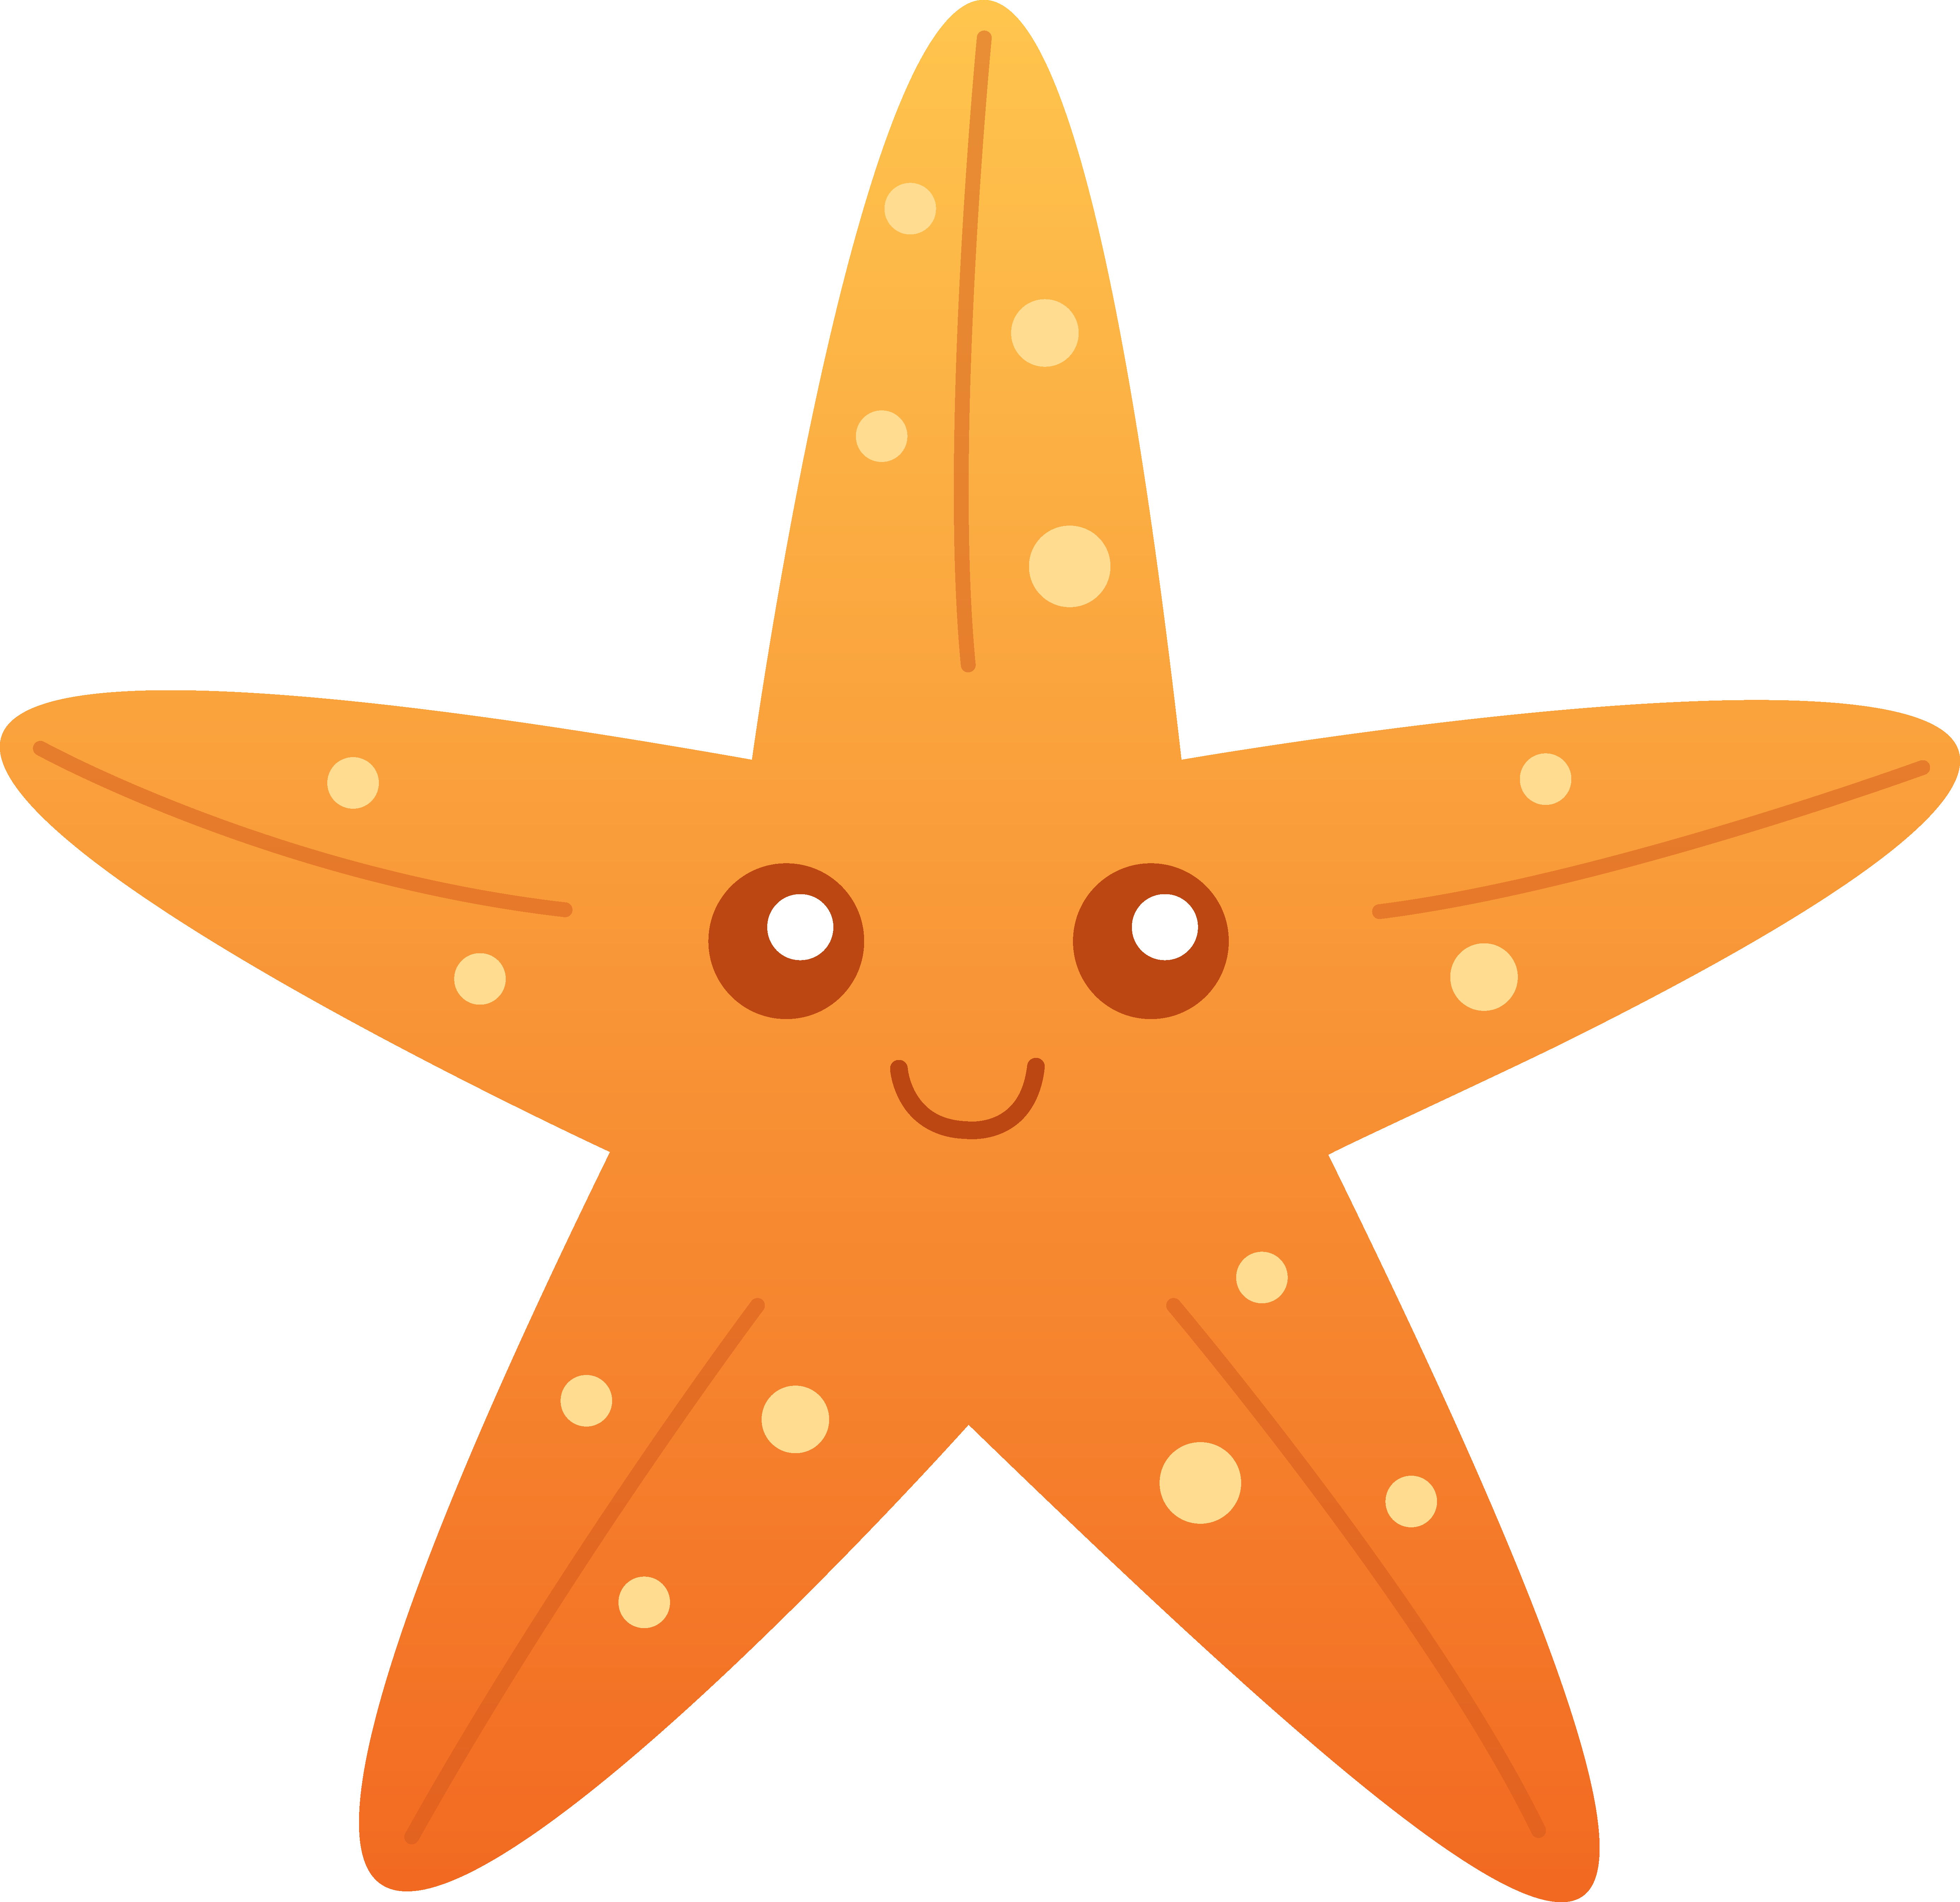 starfish cartoon clip art orange starfish clip art pre school rh pinterest com starfish clipart starfish clip art pictures